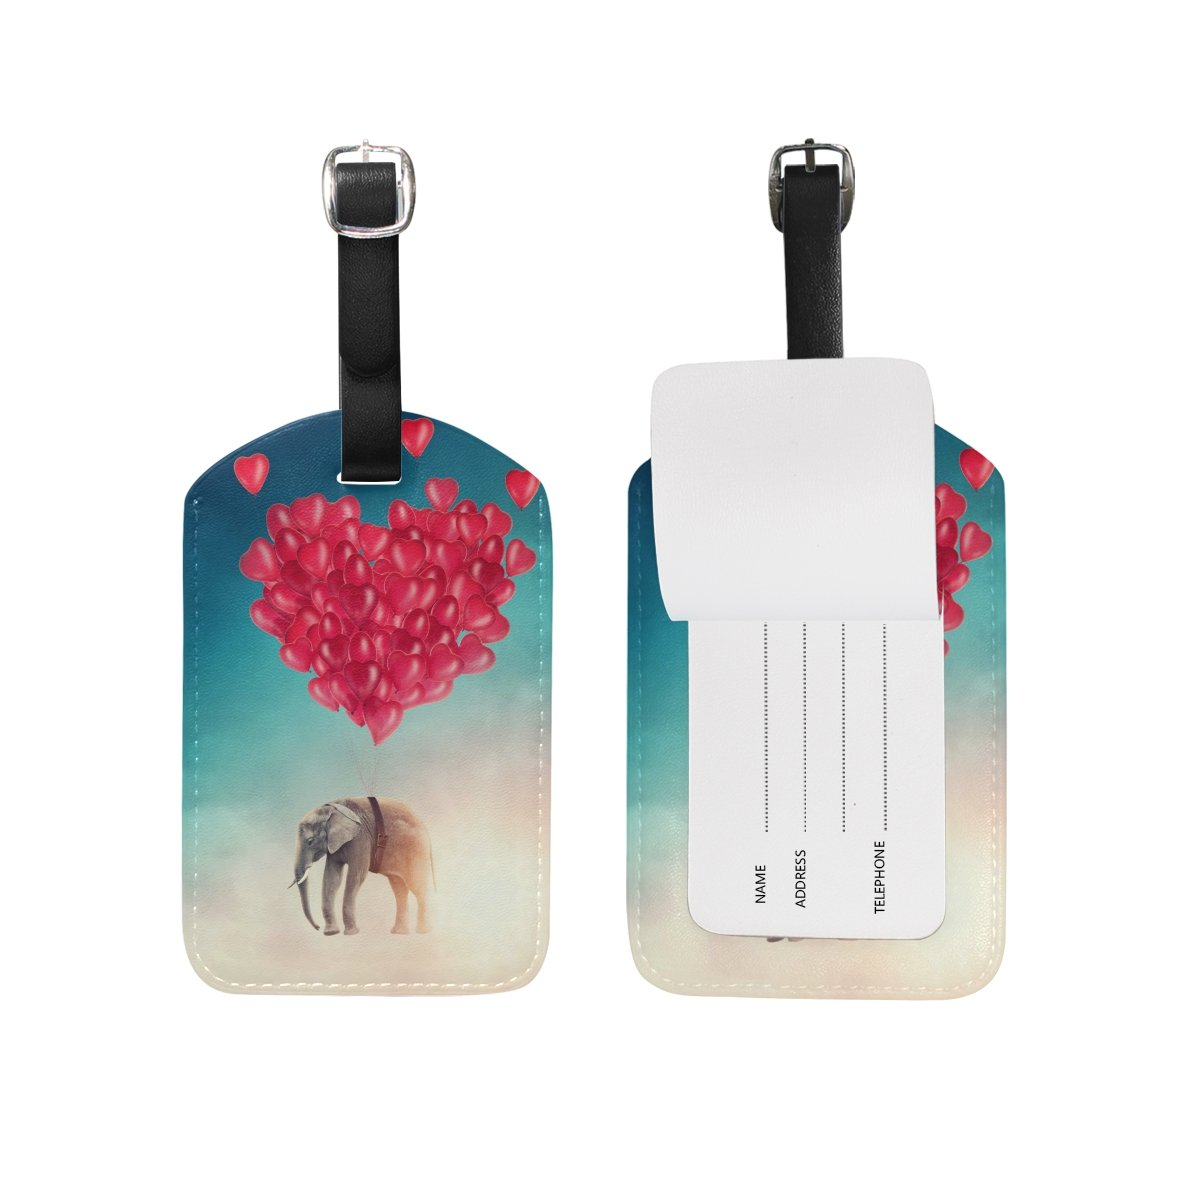 Use4 Pink Unicorn Cat Rainbow Luggage Tags Travel ID Bag Tag for Suitcase 1 Piece g1066227p151c166s254